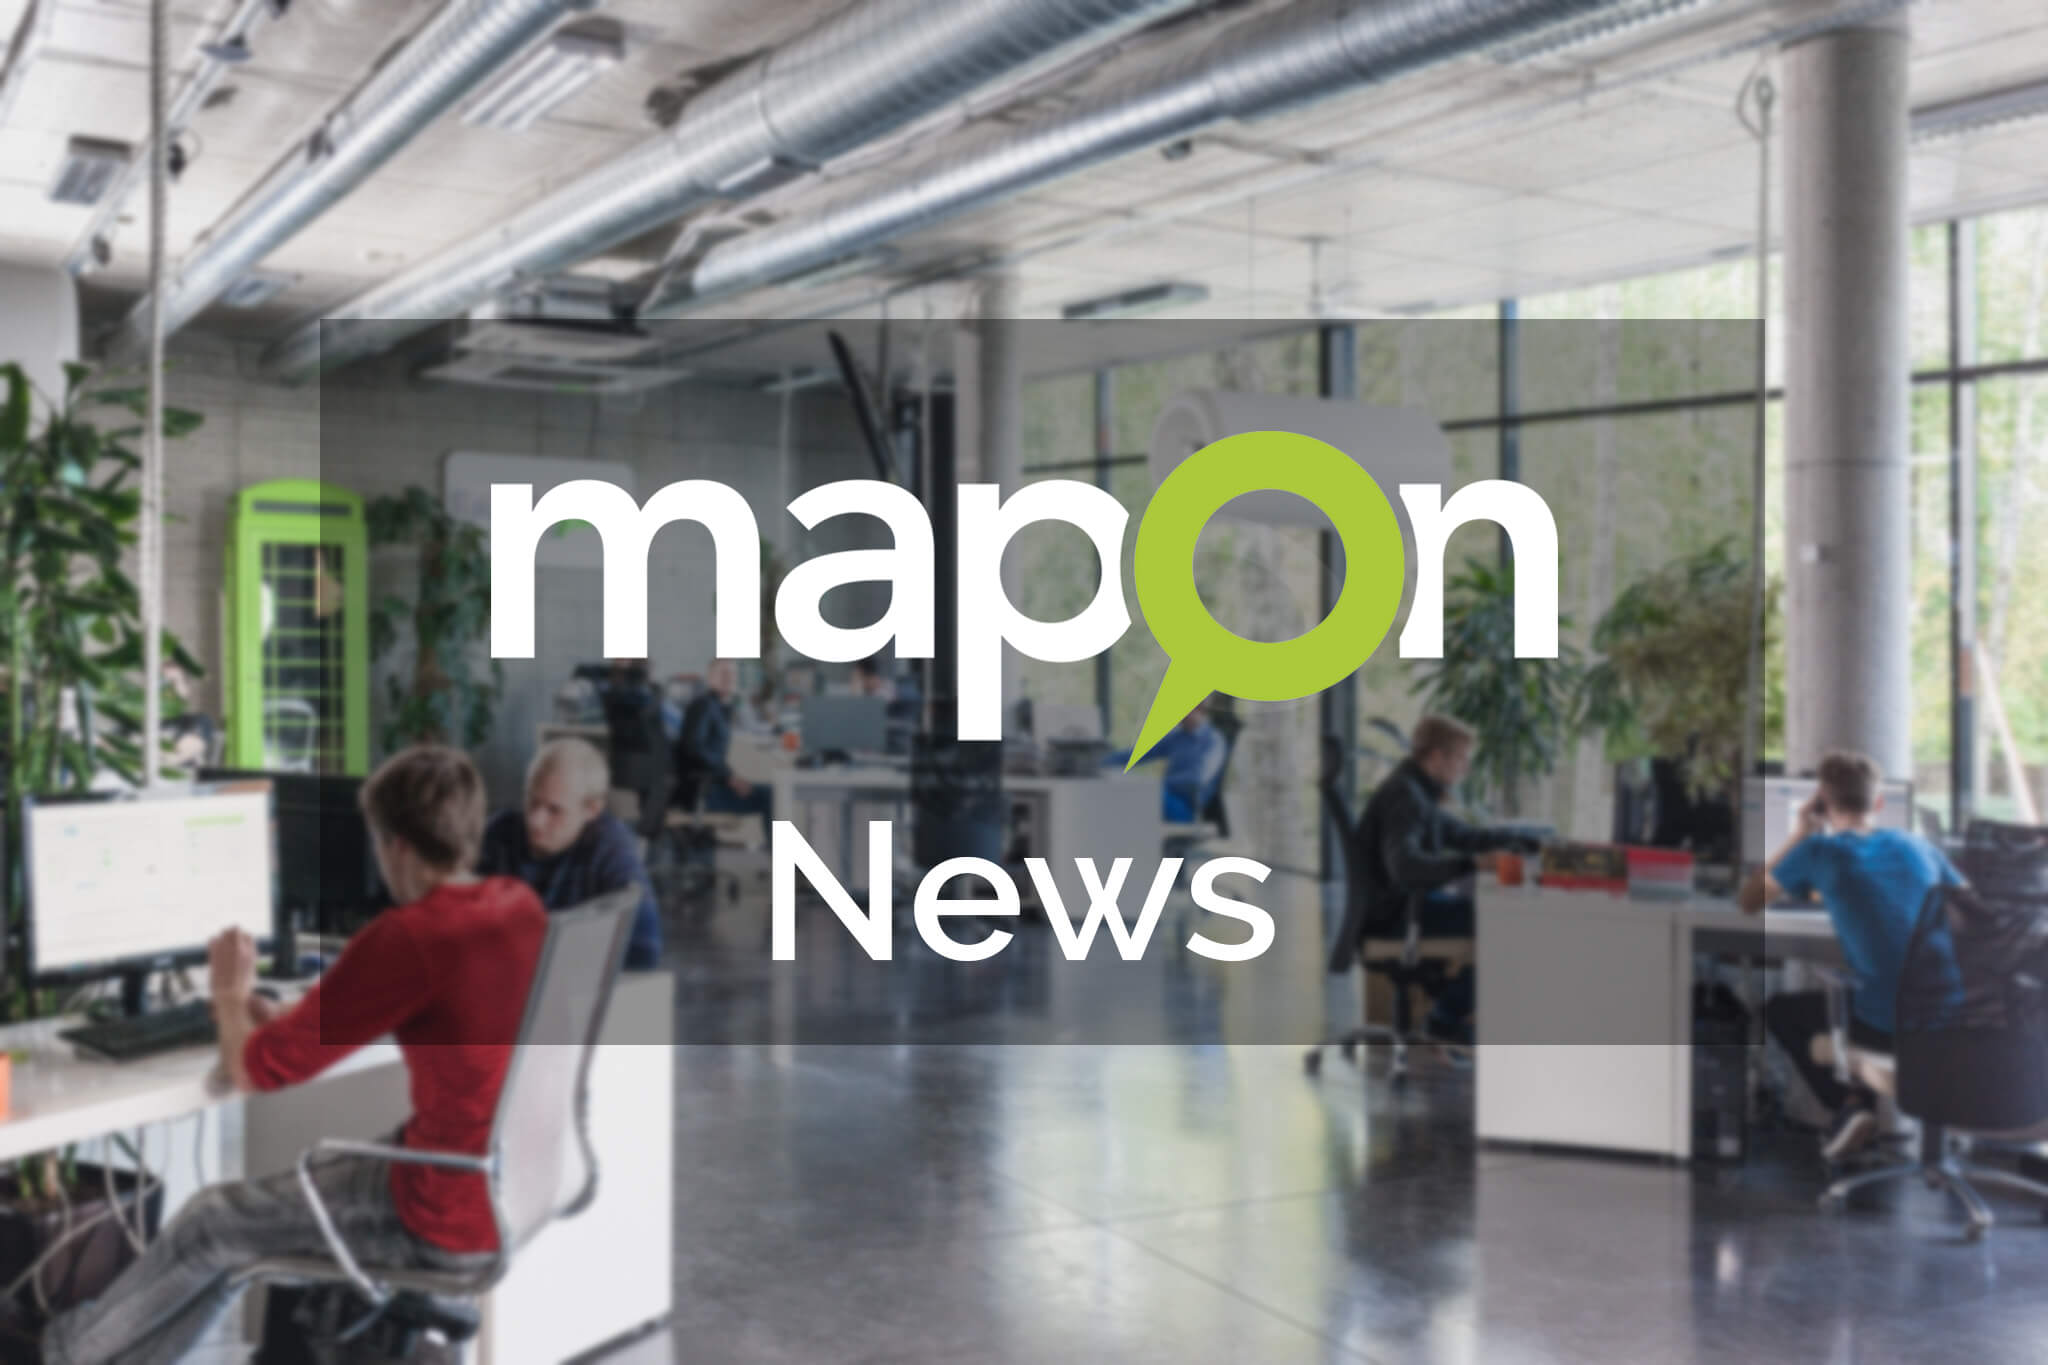 Major Milestone for Mapon Expert; System and API Updates